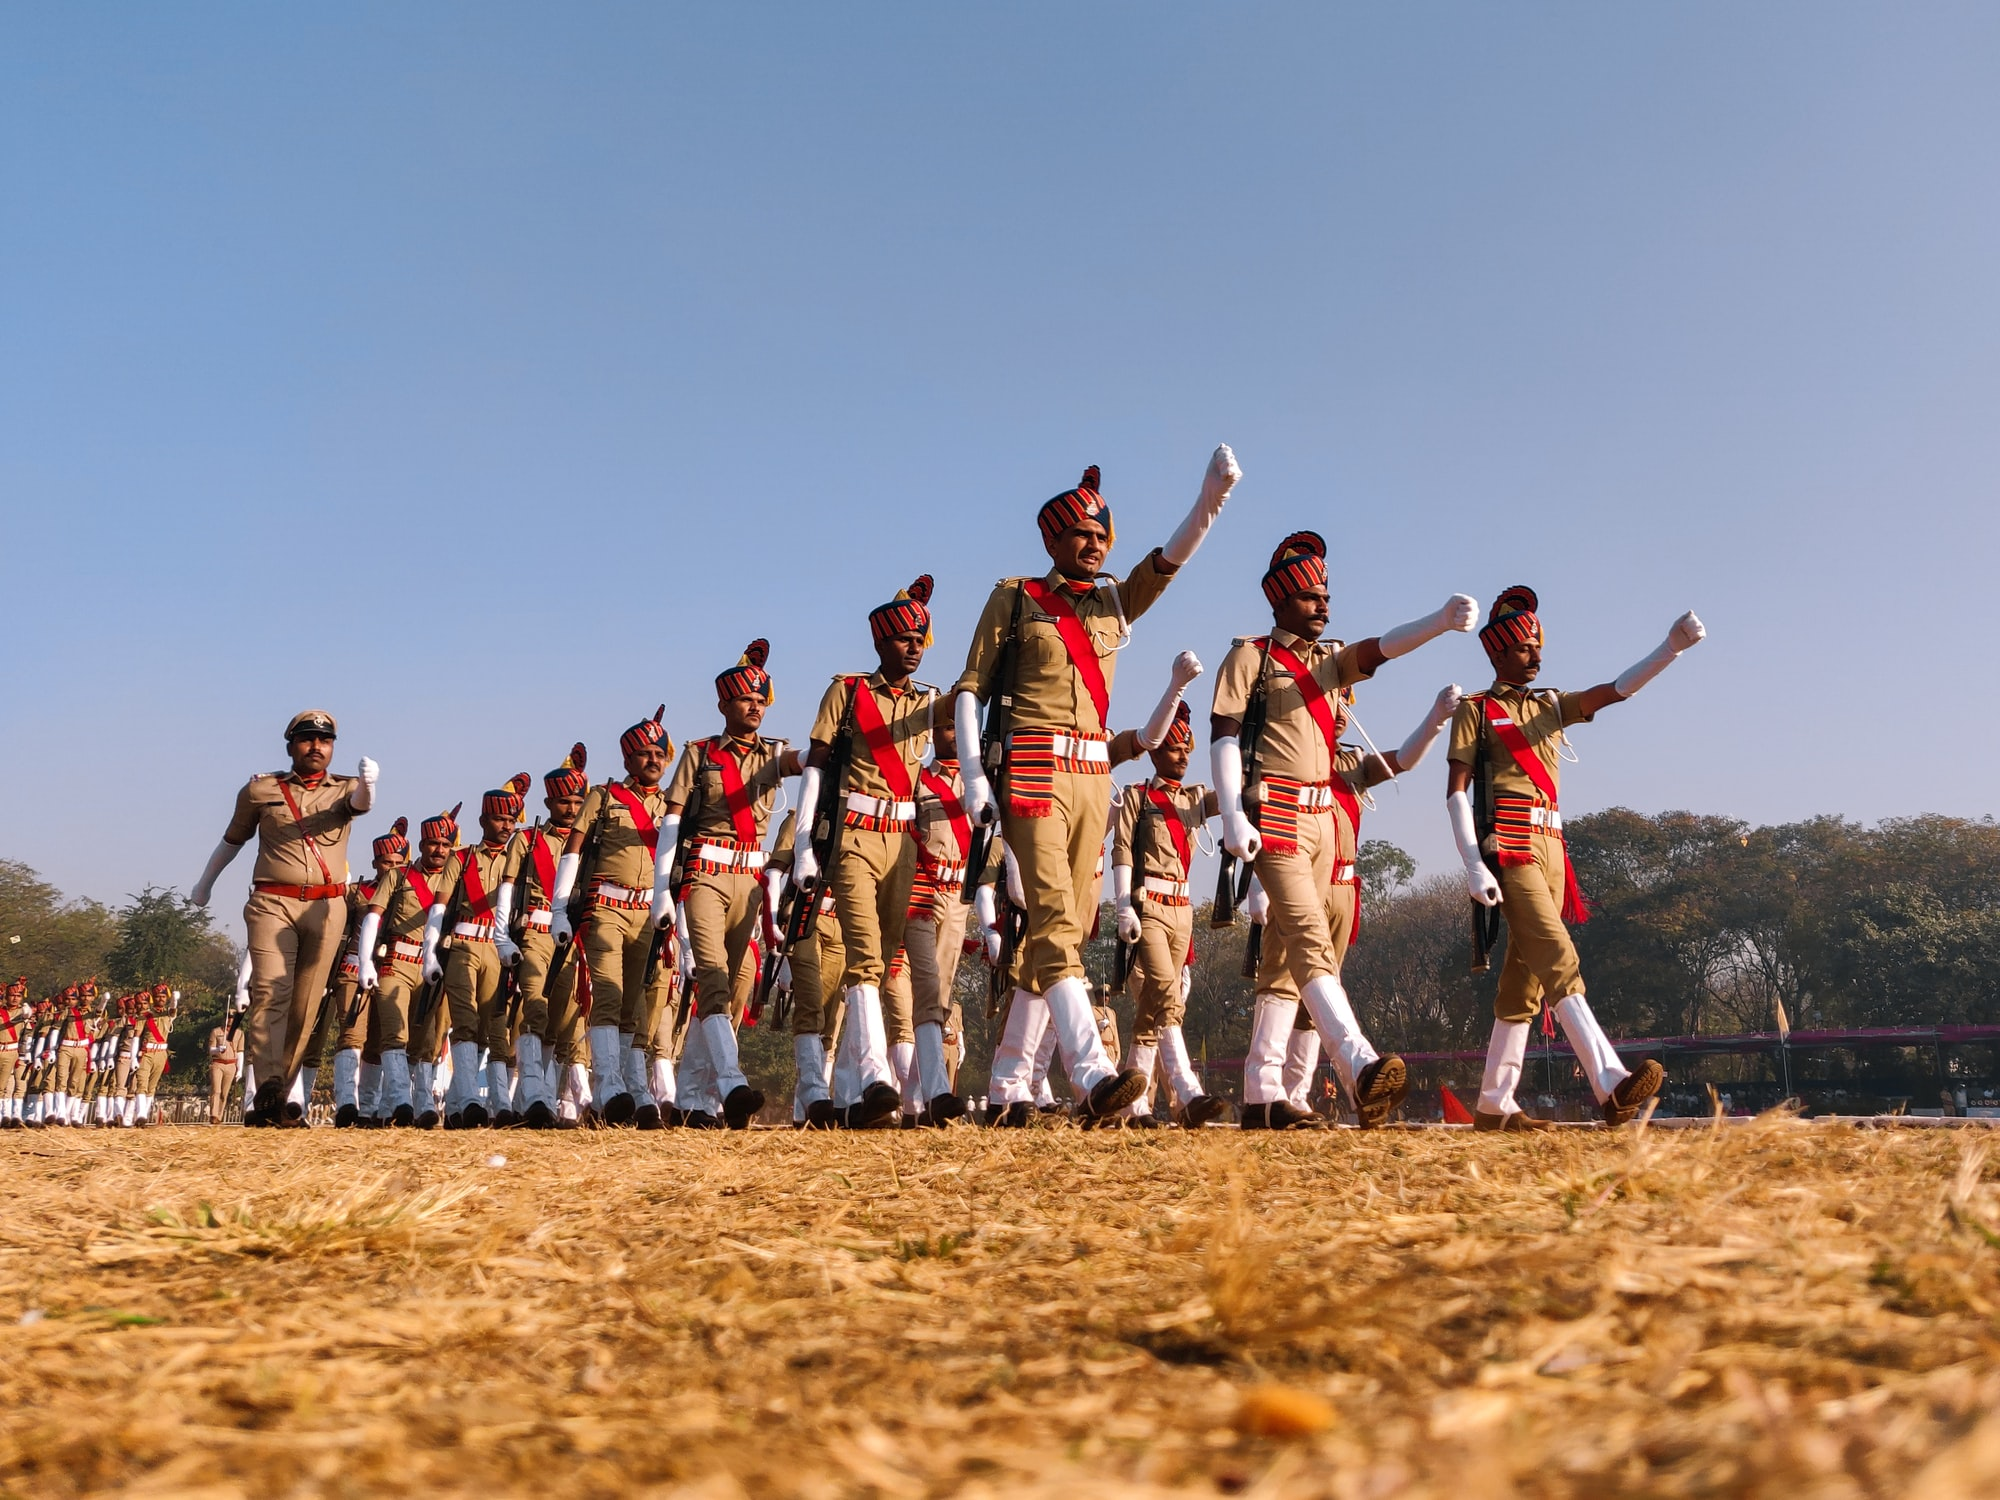 India  celebrating republic day with the parade